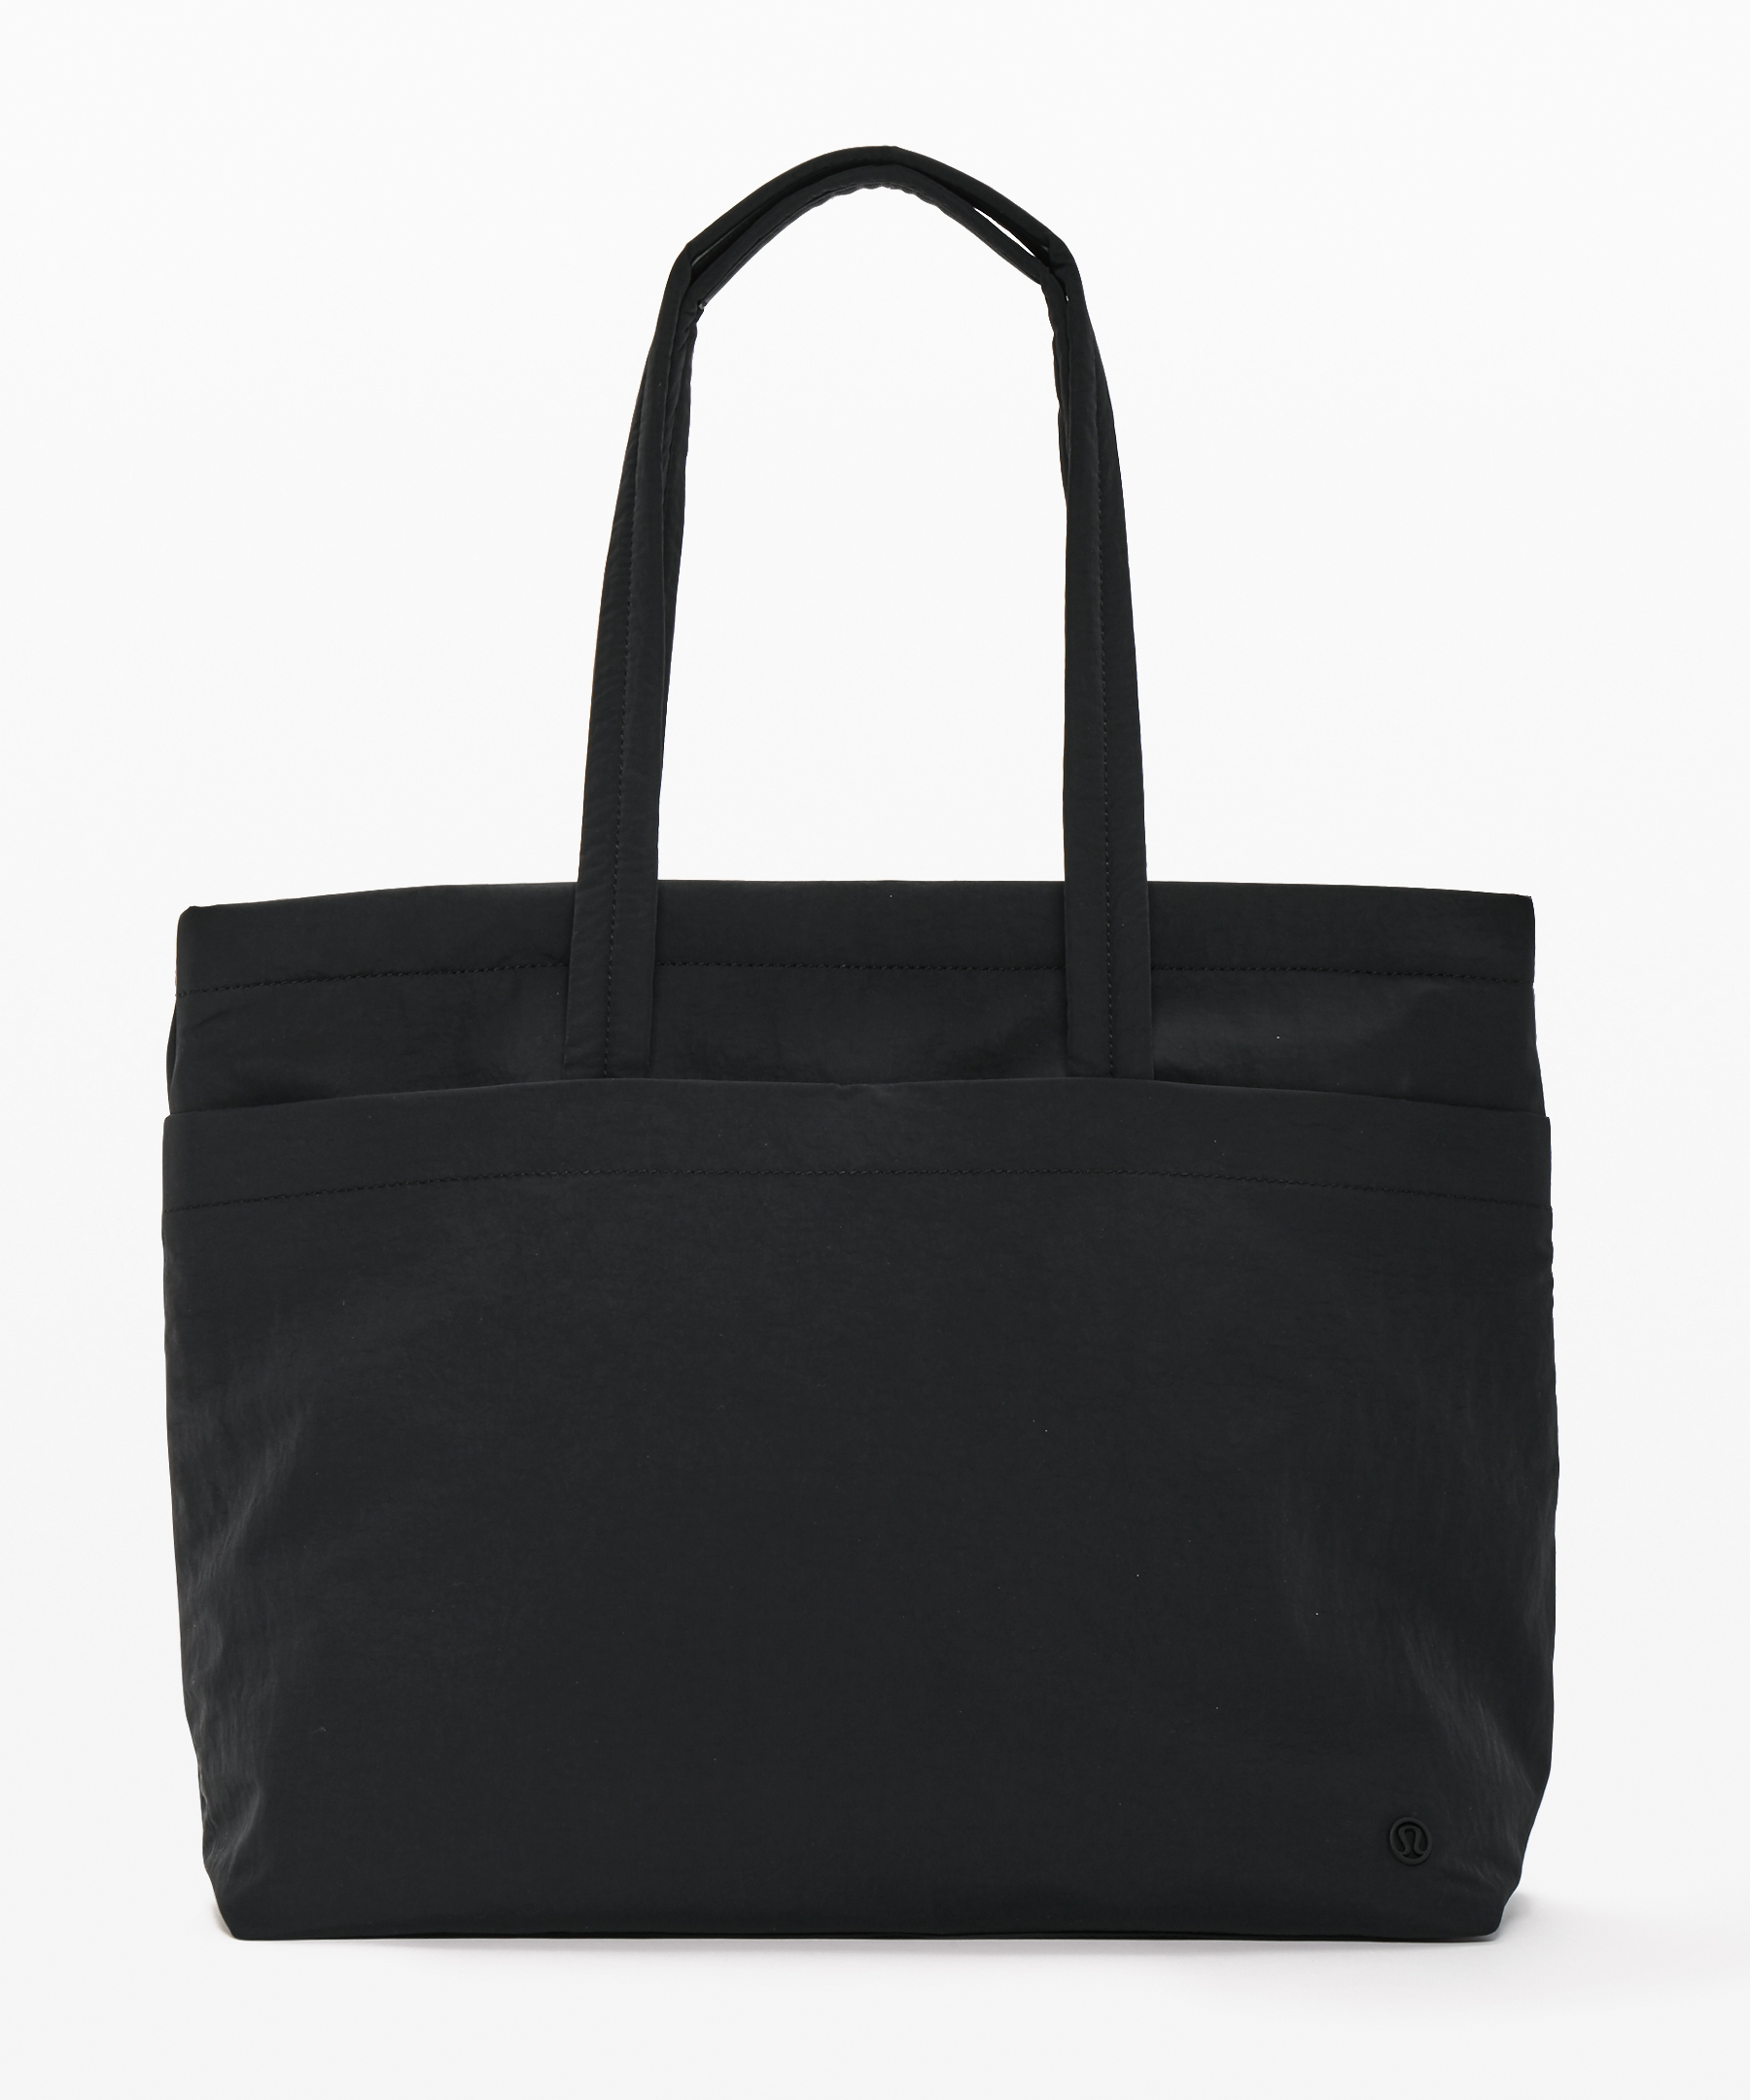 6fdbef57612 On My Level Tote Large 15L in 2019   Products   Large tote, Bags ...